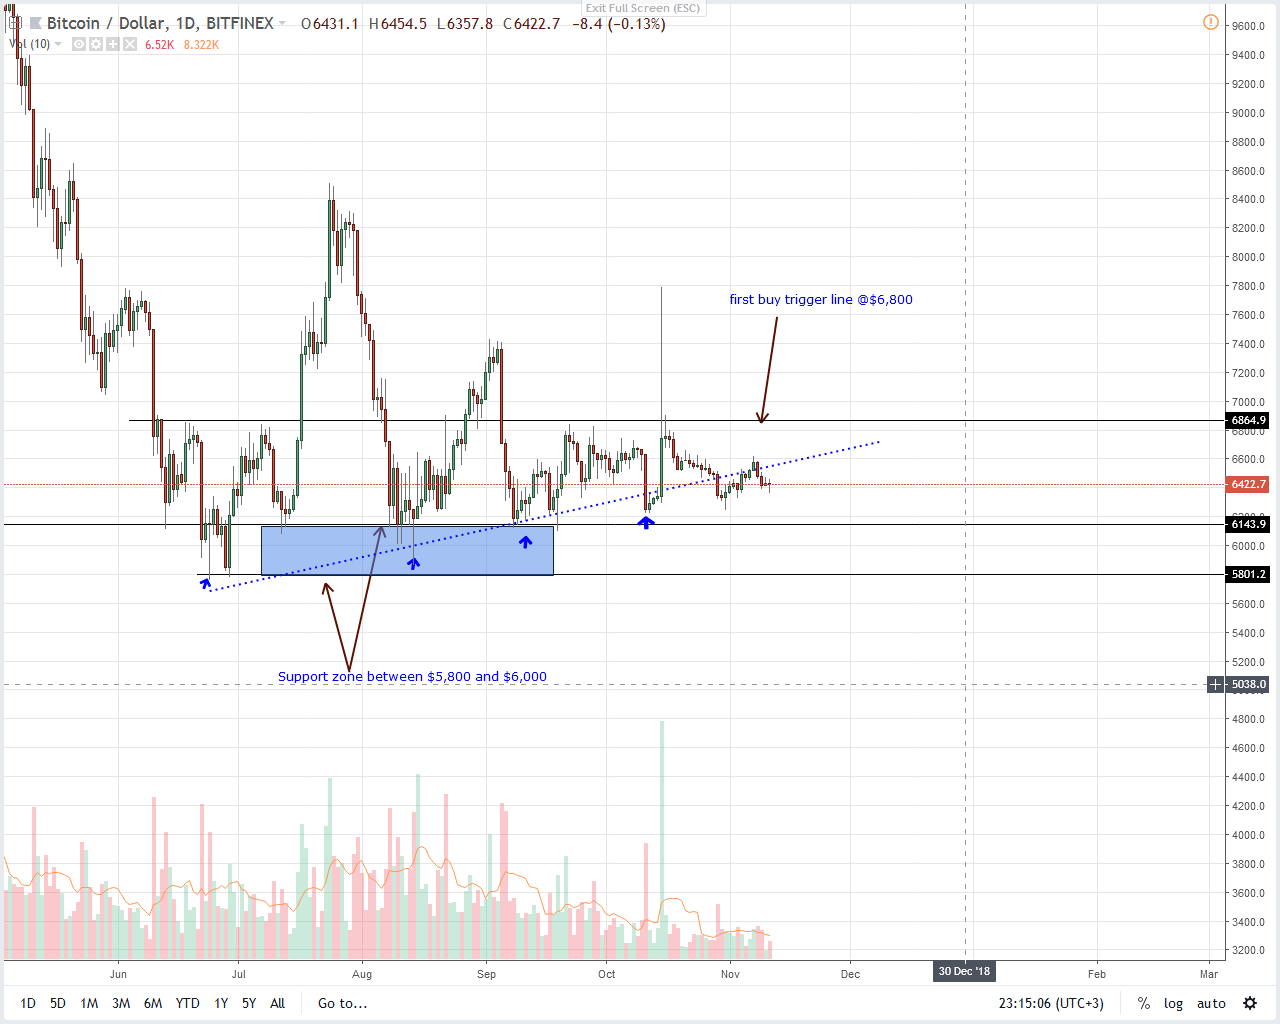 BTC/USD Price Analysis